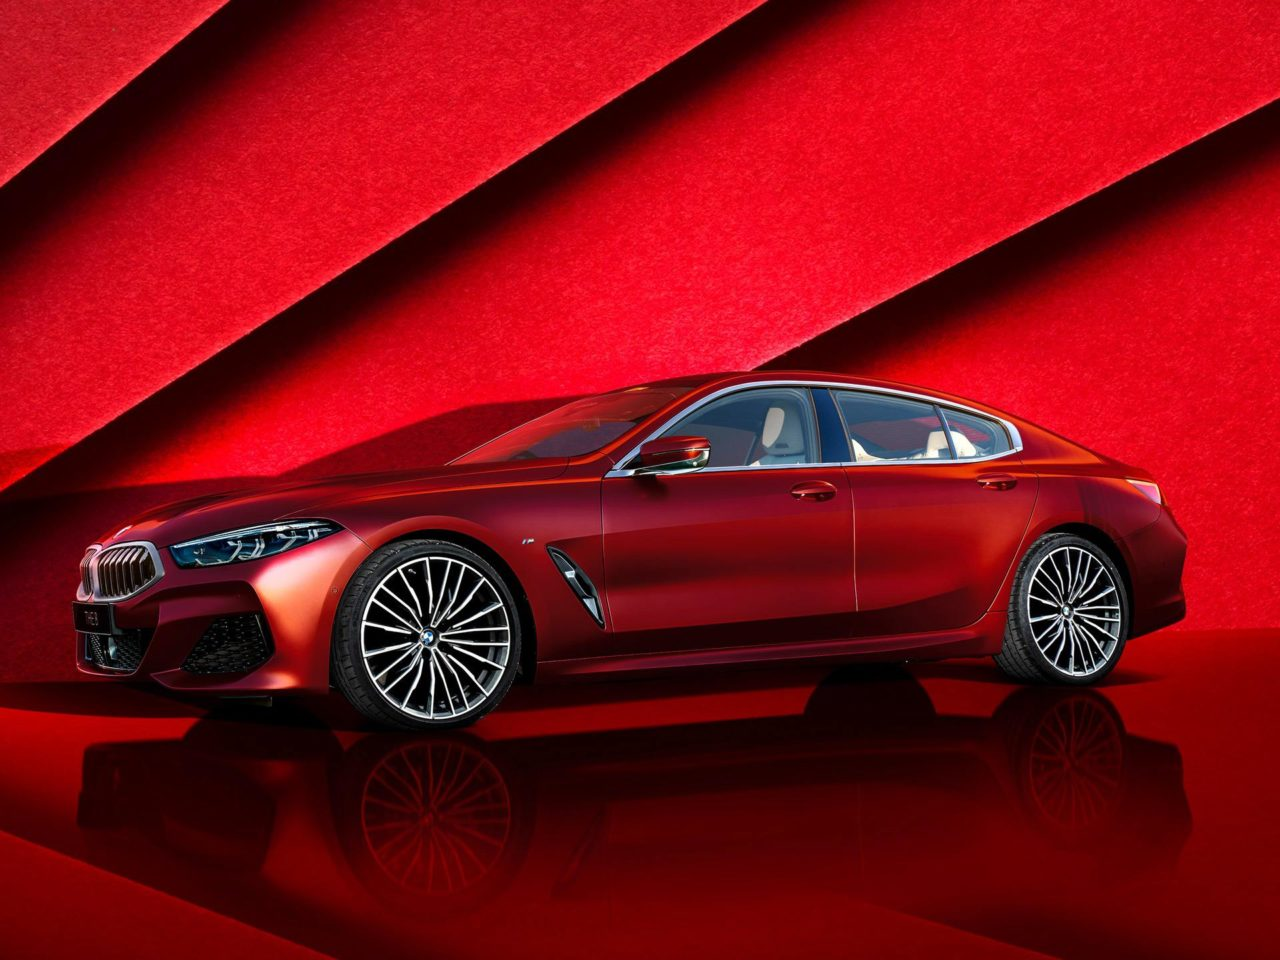 bmw_8_series_Gran_coupe_collector_edition_05-1280x960.jpg